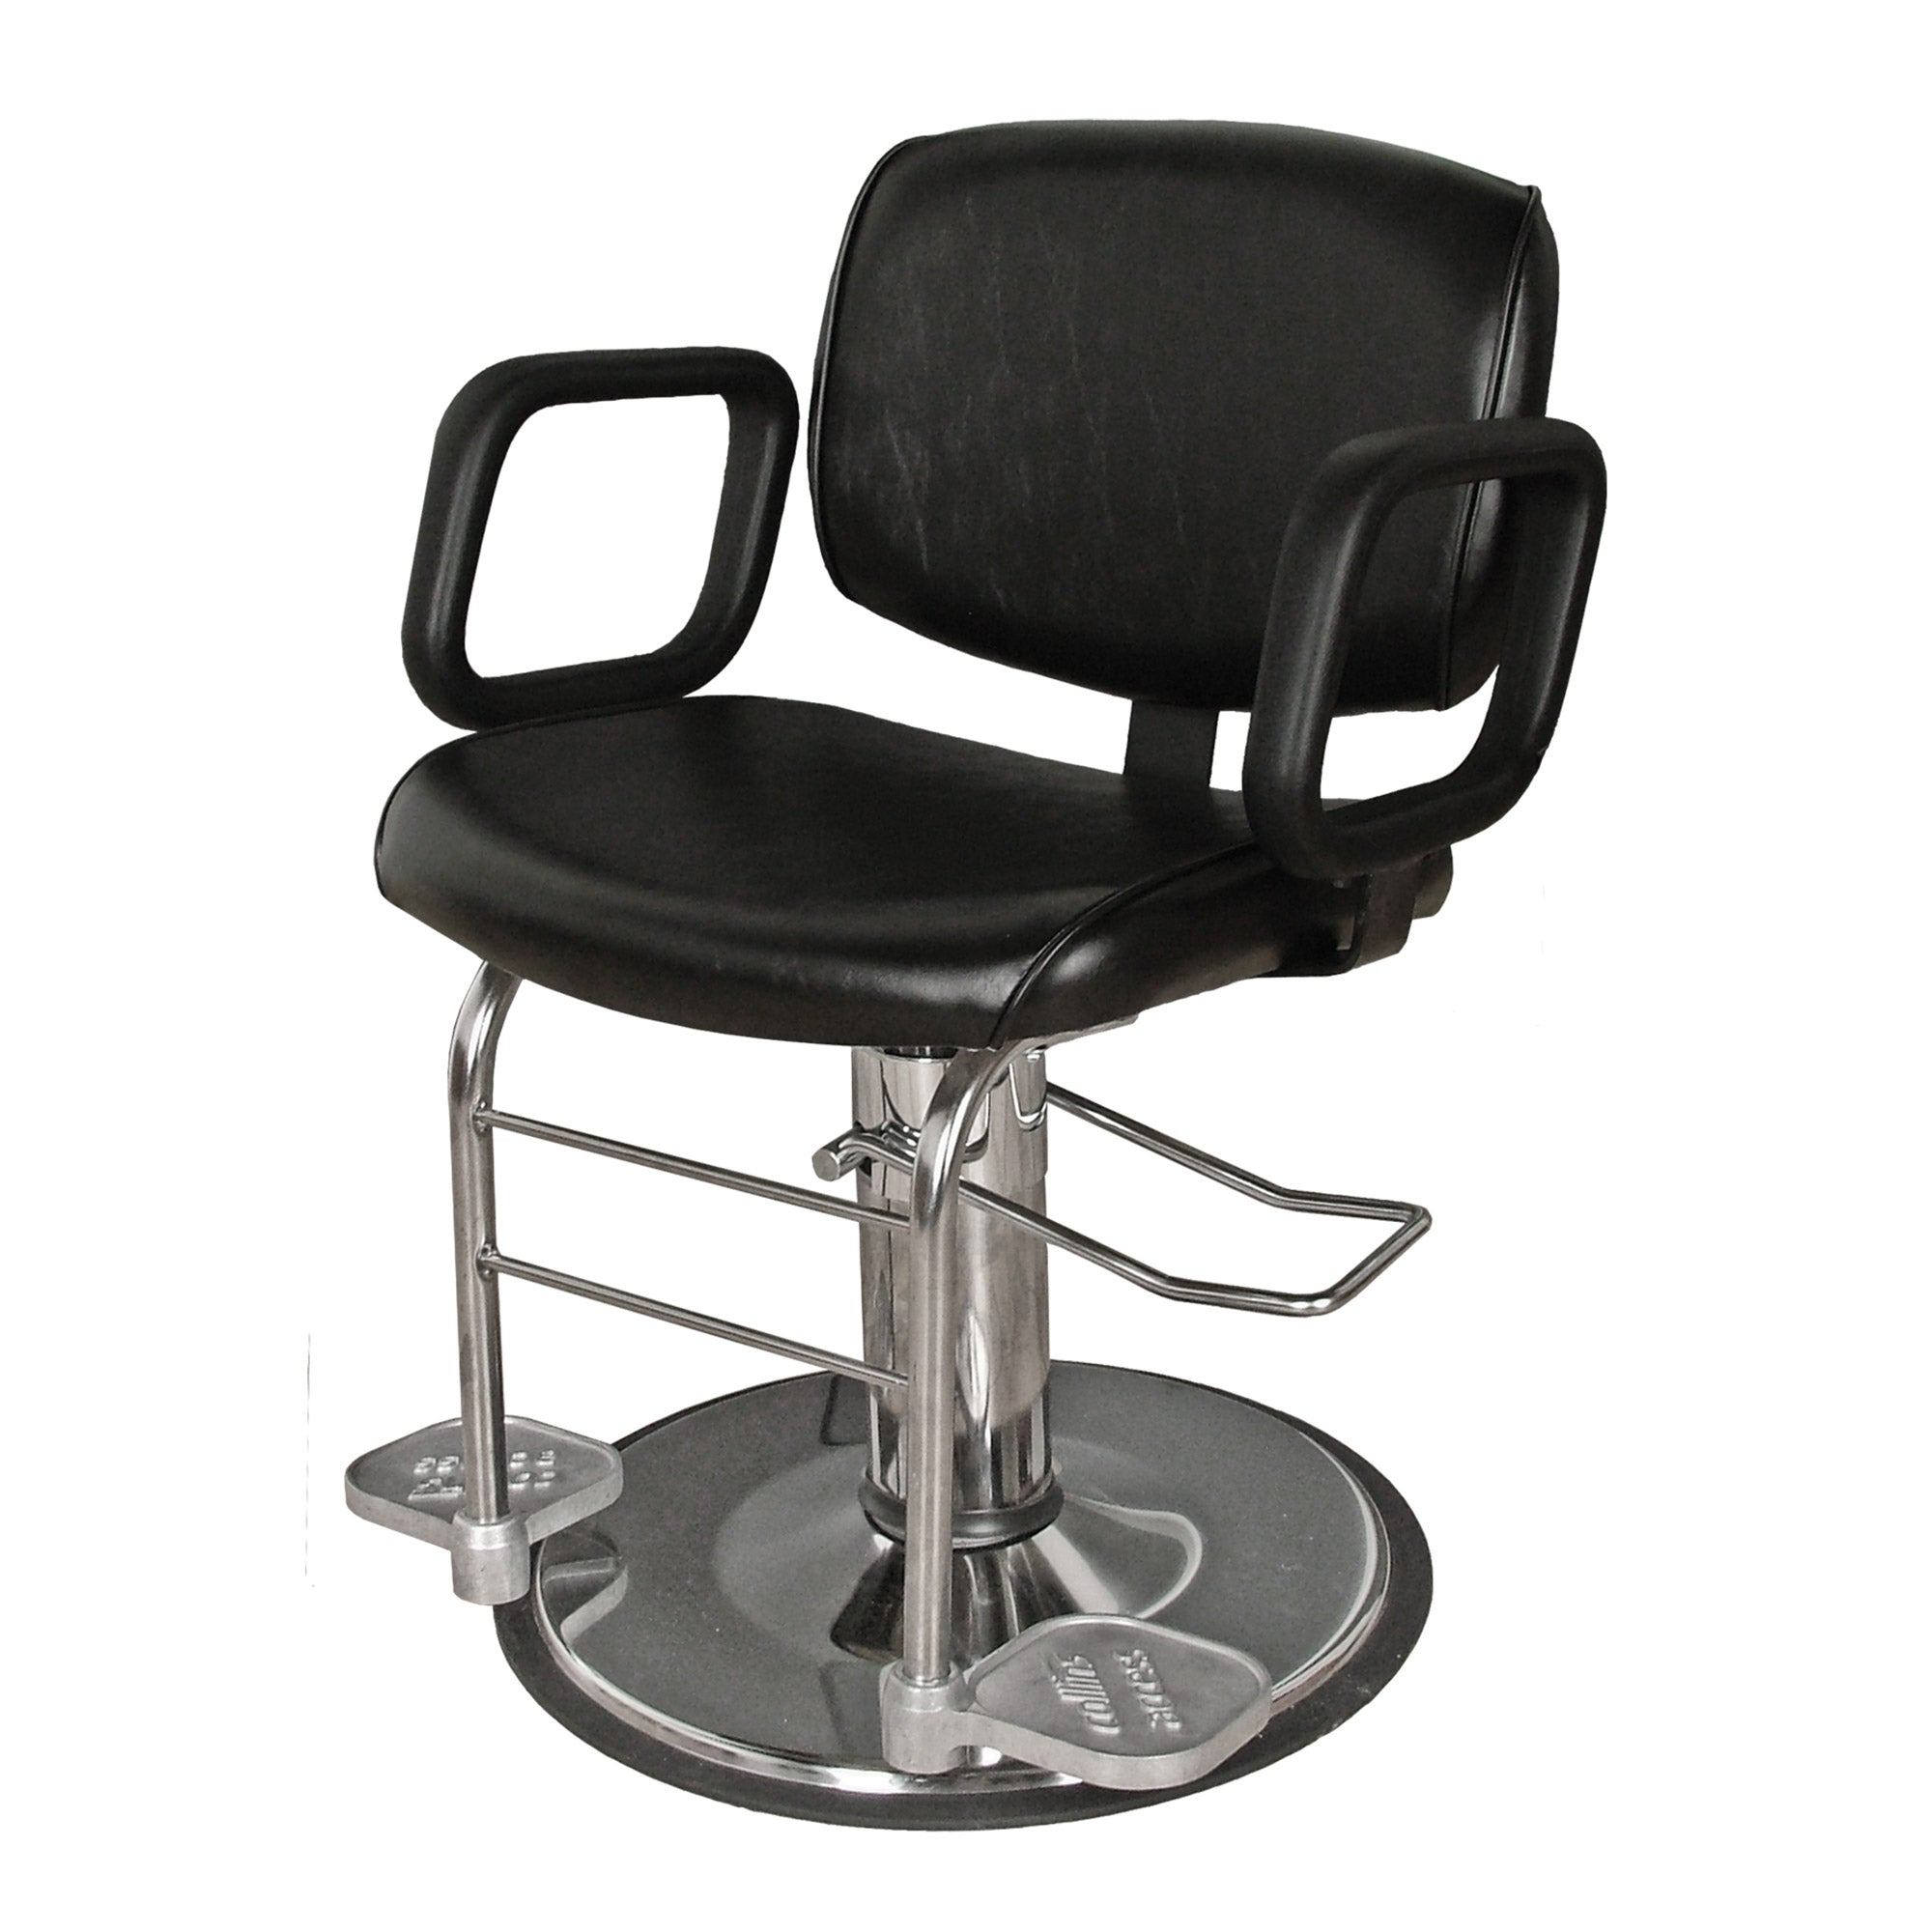 Access Styling Chair - Collins